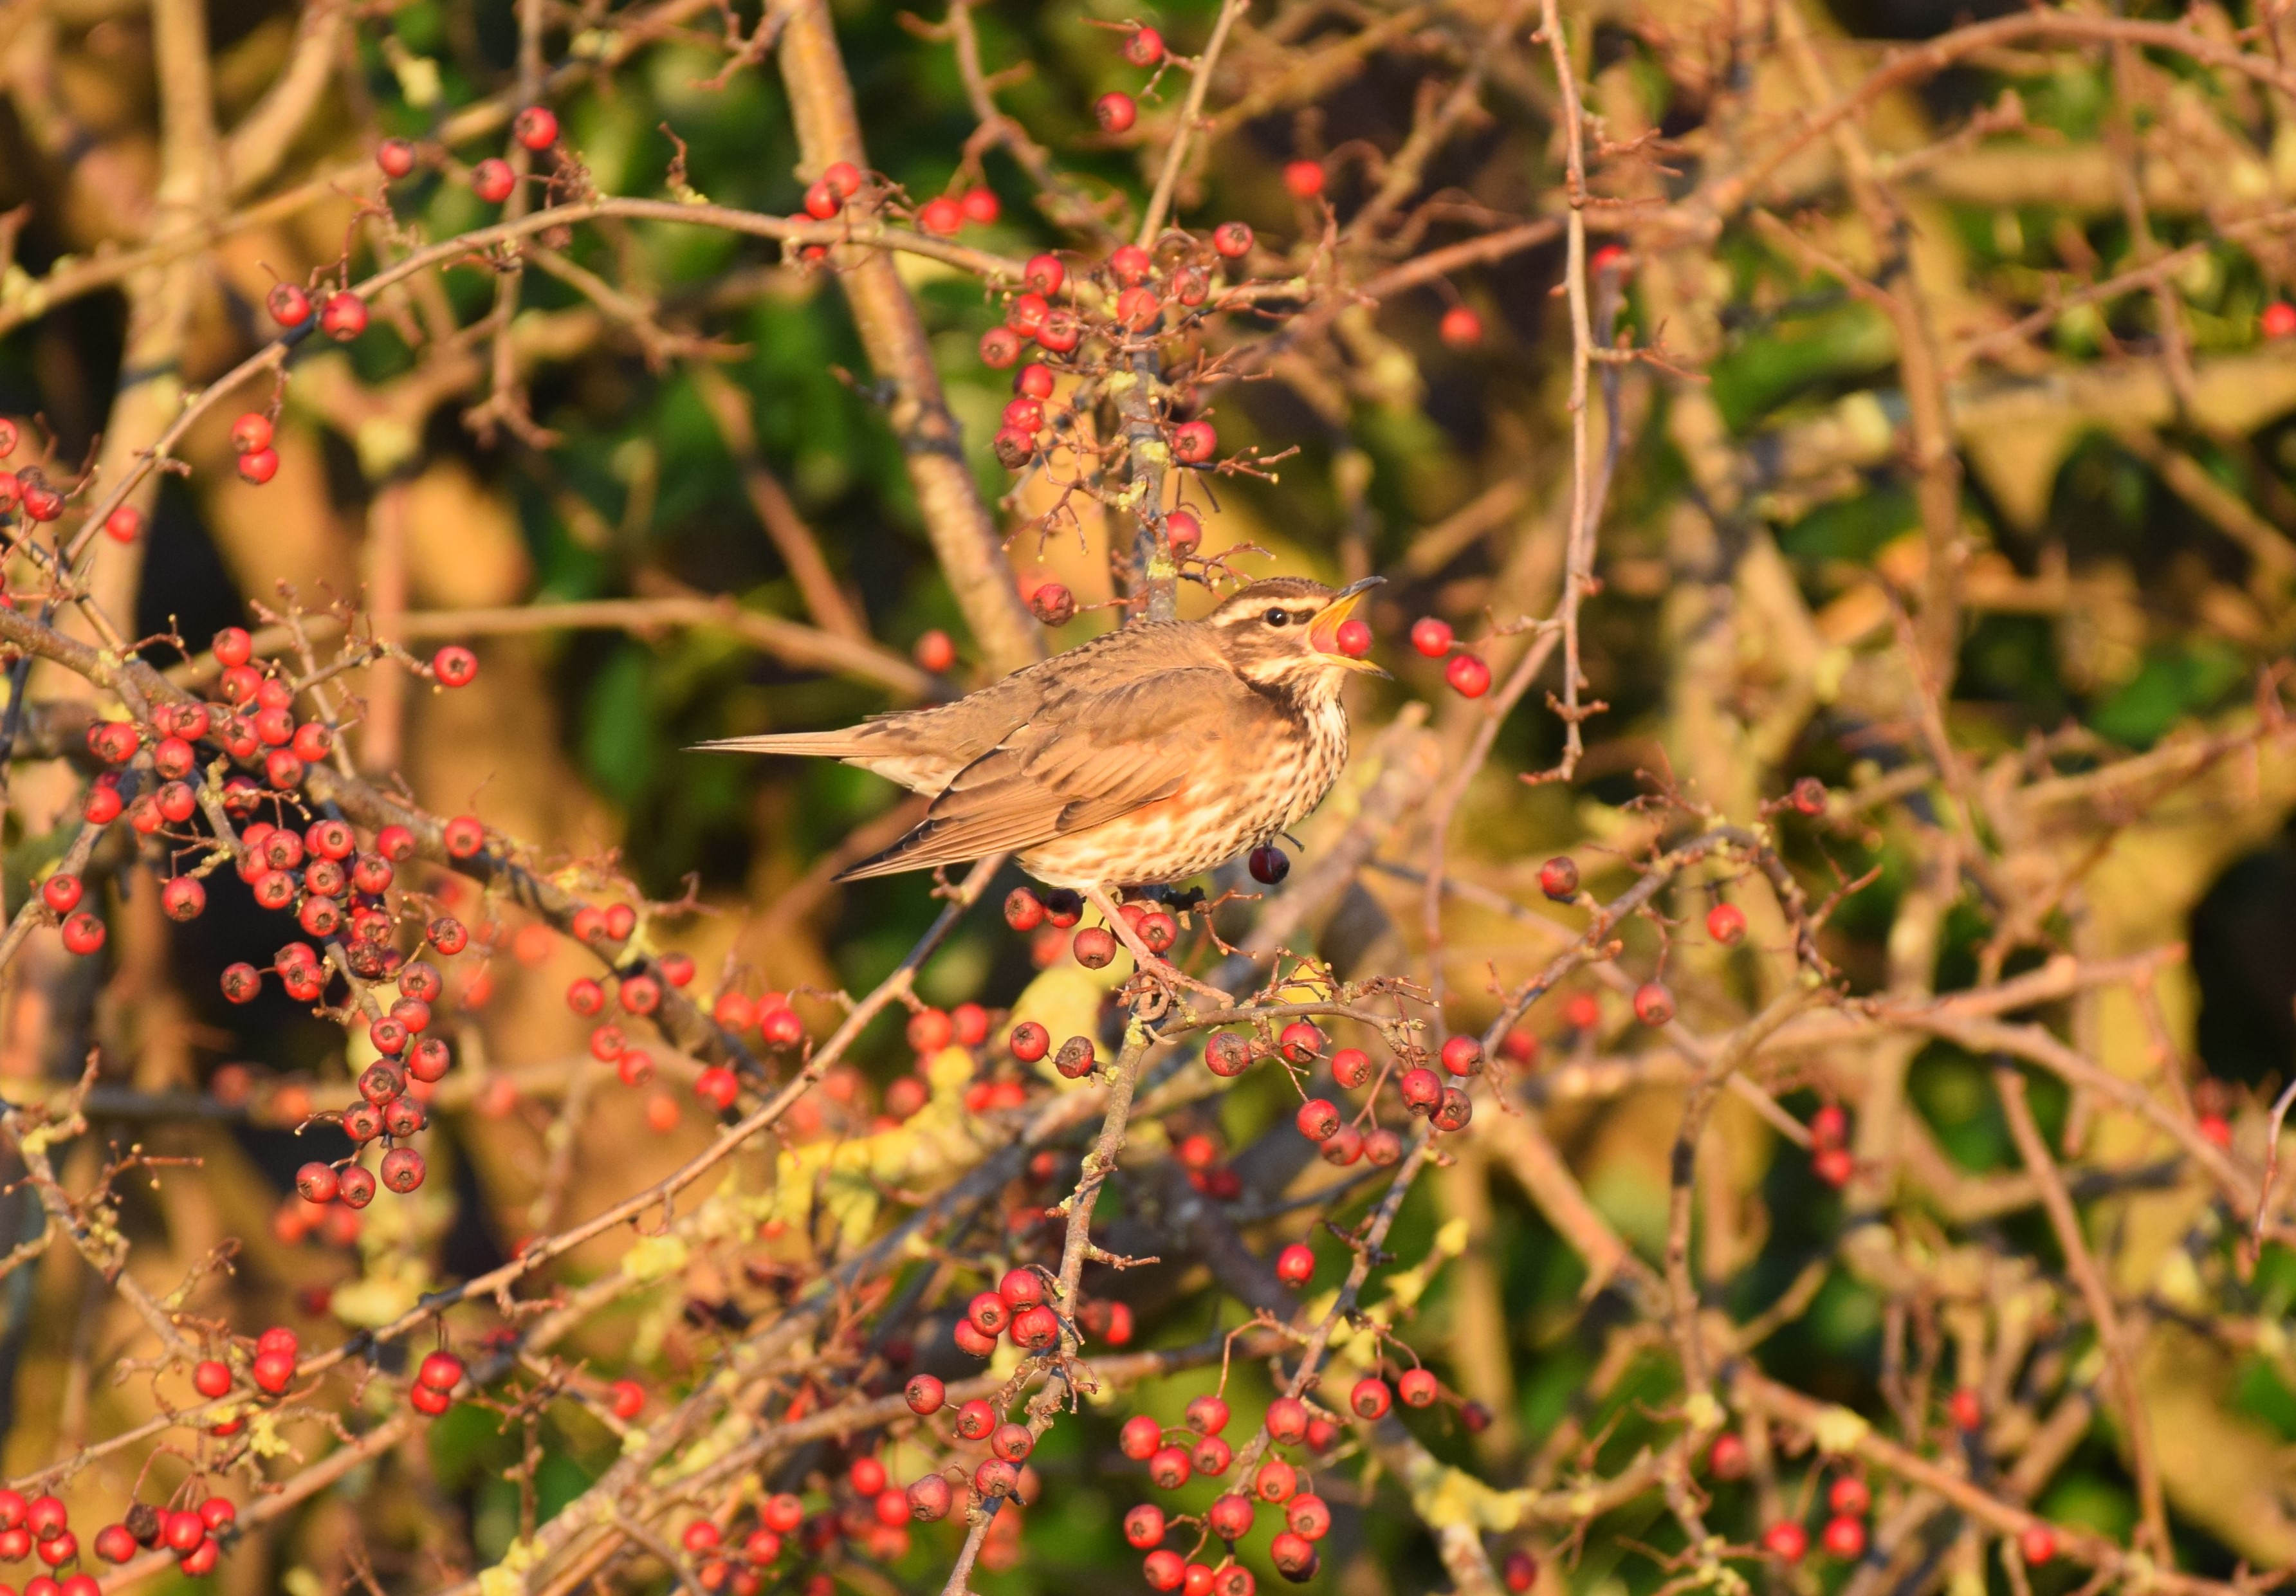 Redwing eating berries, marshes